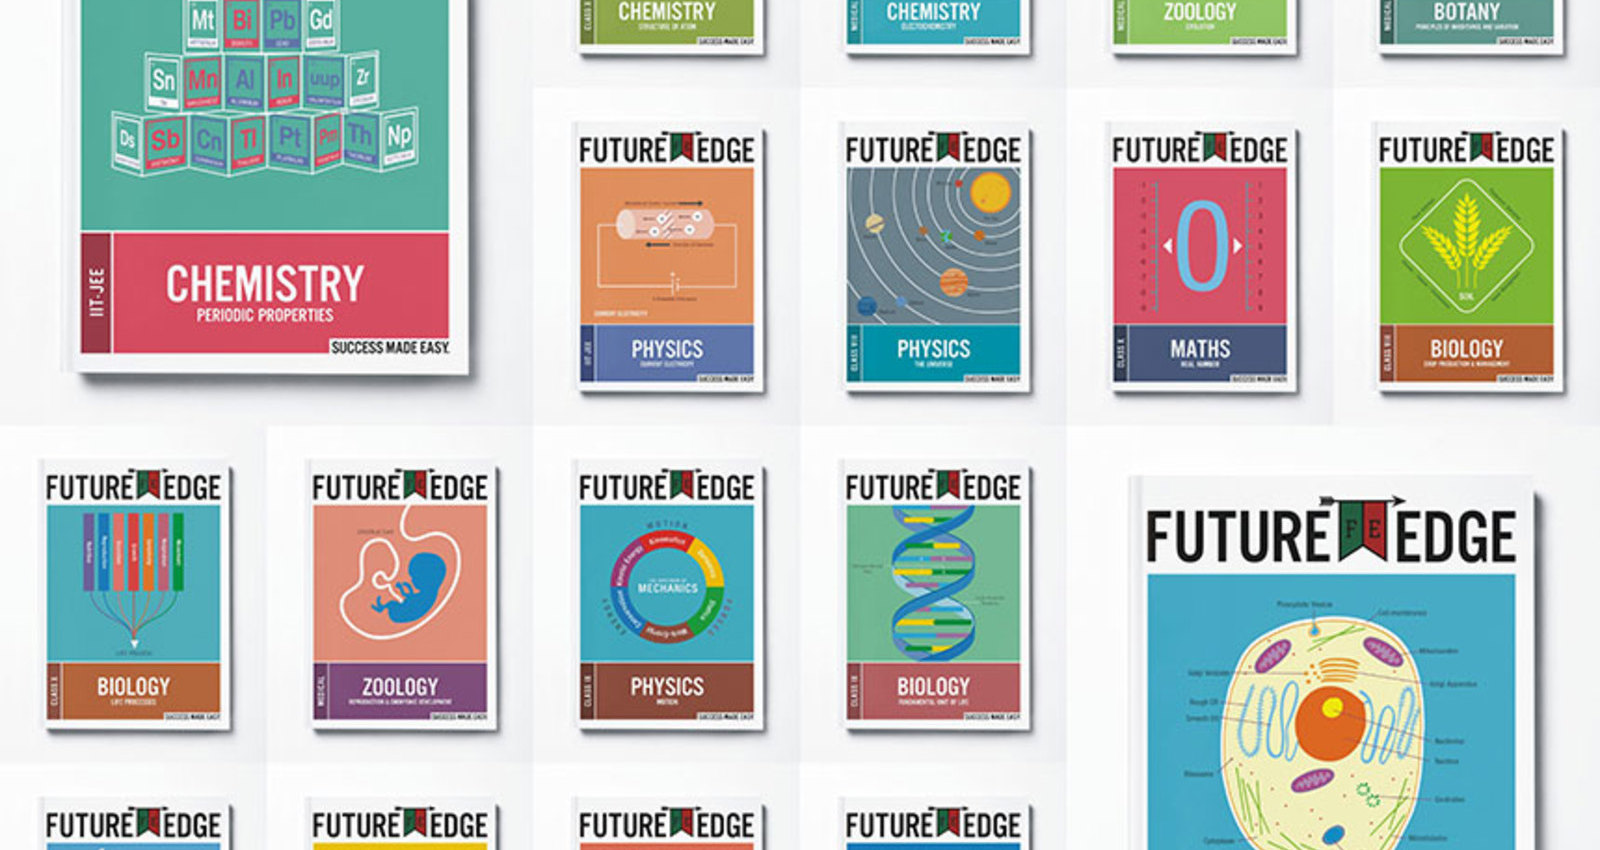 The Future Edge Books